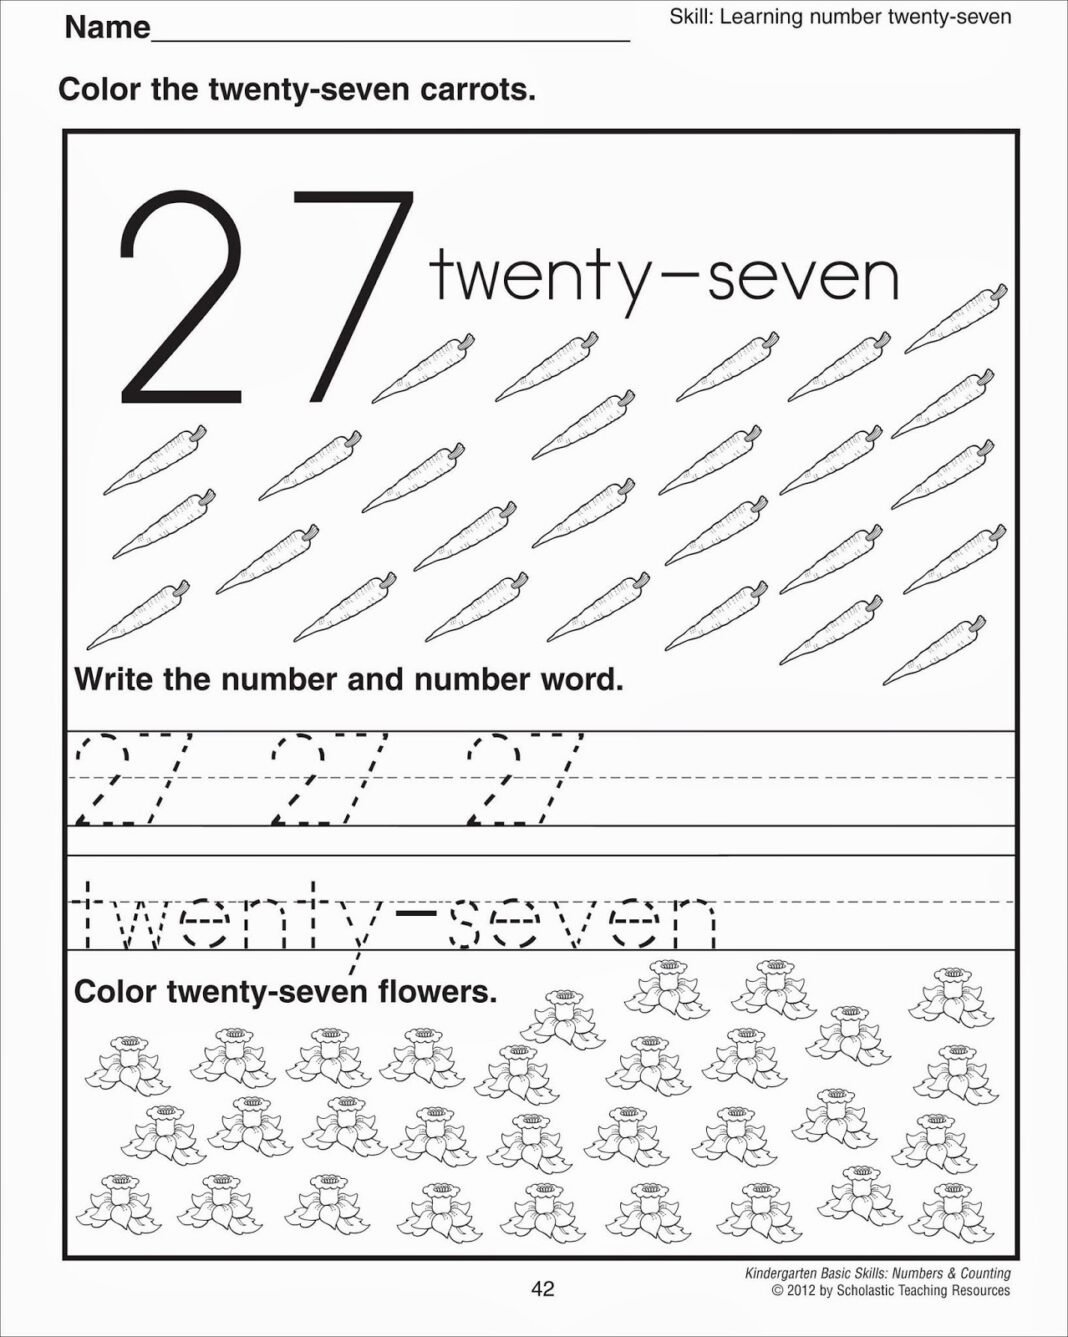 Worksheets for Preschoolers Learning to Write Awesome Worksheets Preschool Number Worksheets Worksheet Christmas